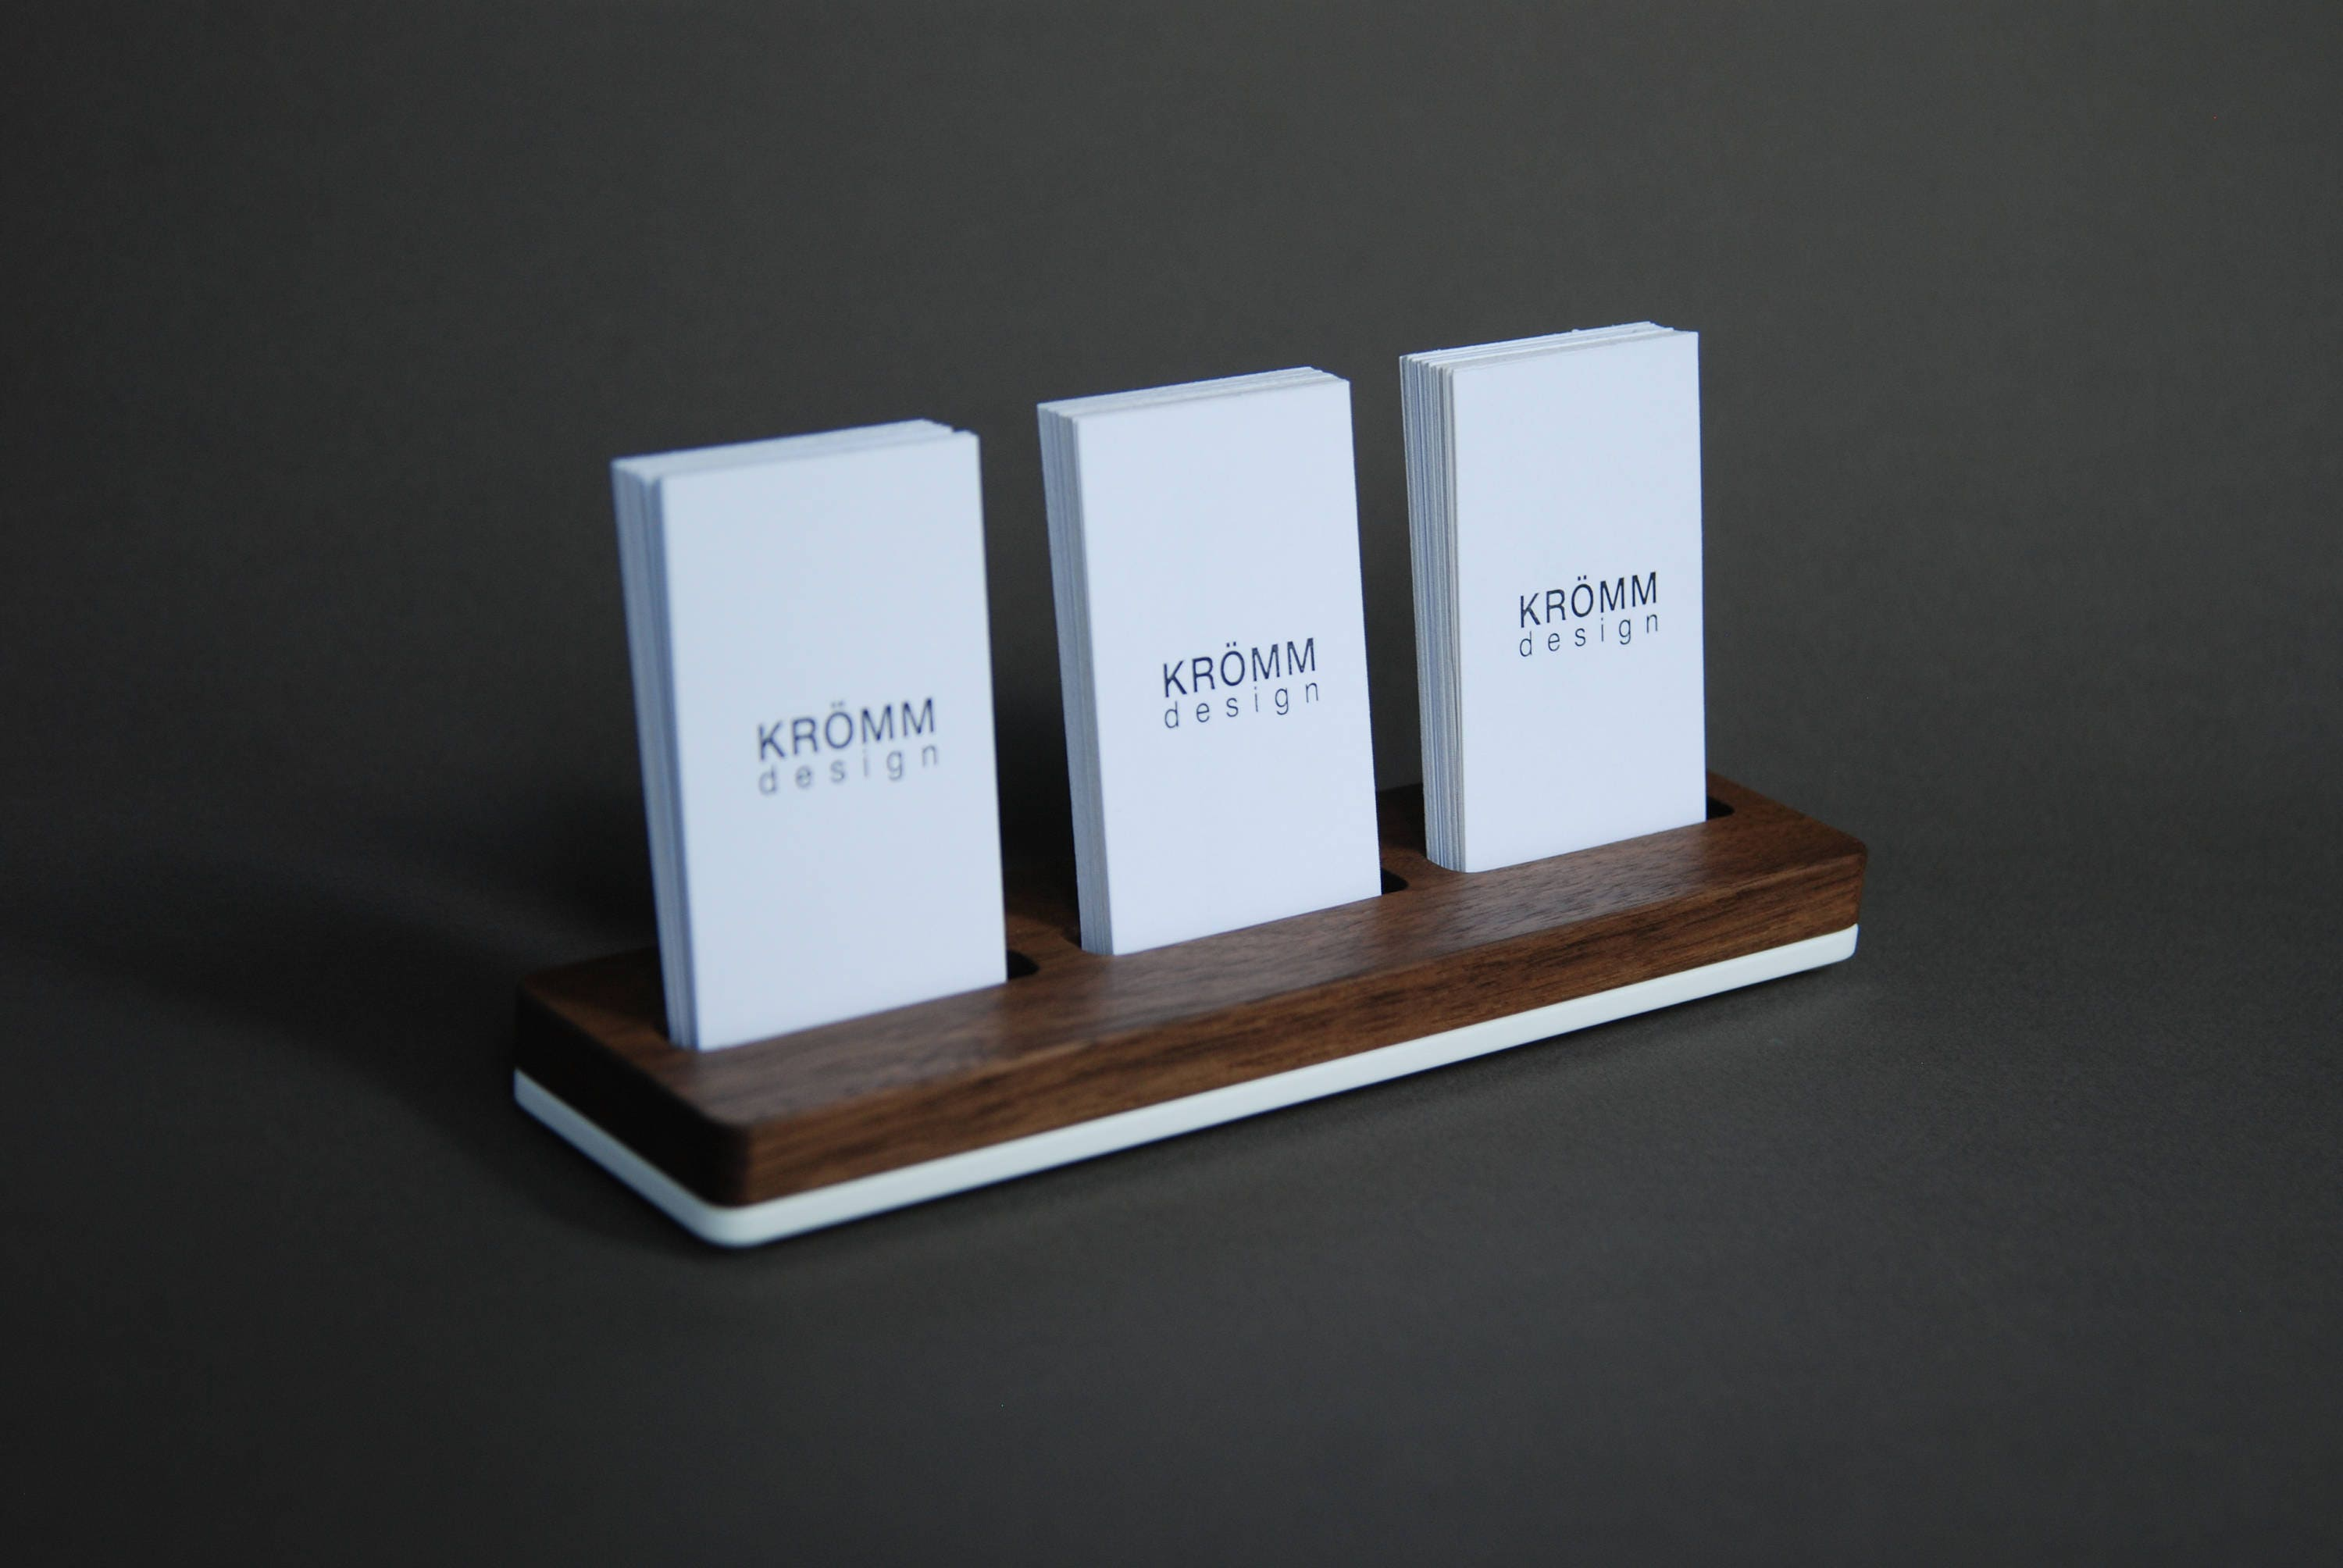 Wood business card stand multiple moo business card holder wood business card stand multiple moo business card holder walnut wood and acrylic 3 vertical business card stand colourmoves